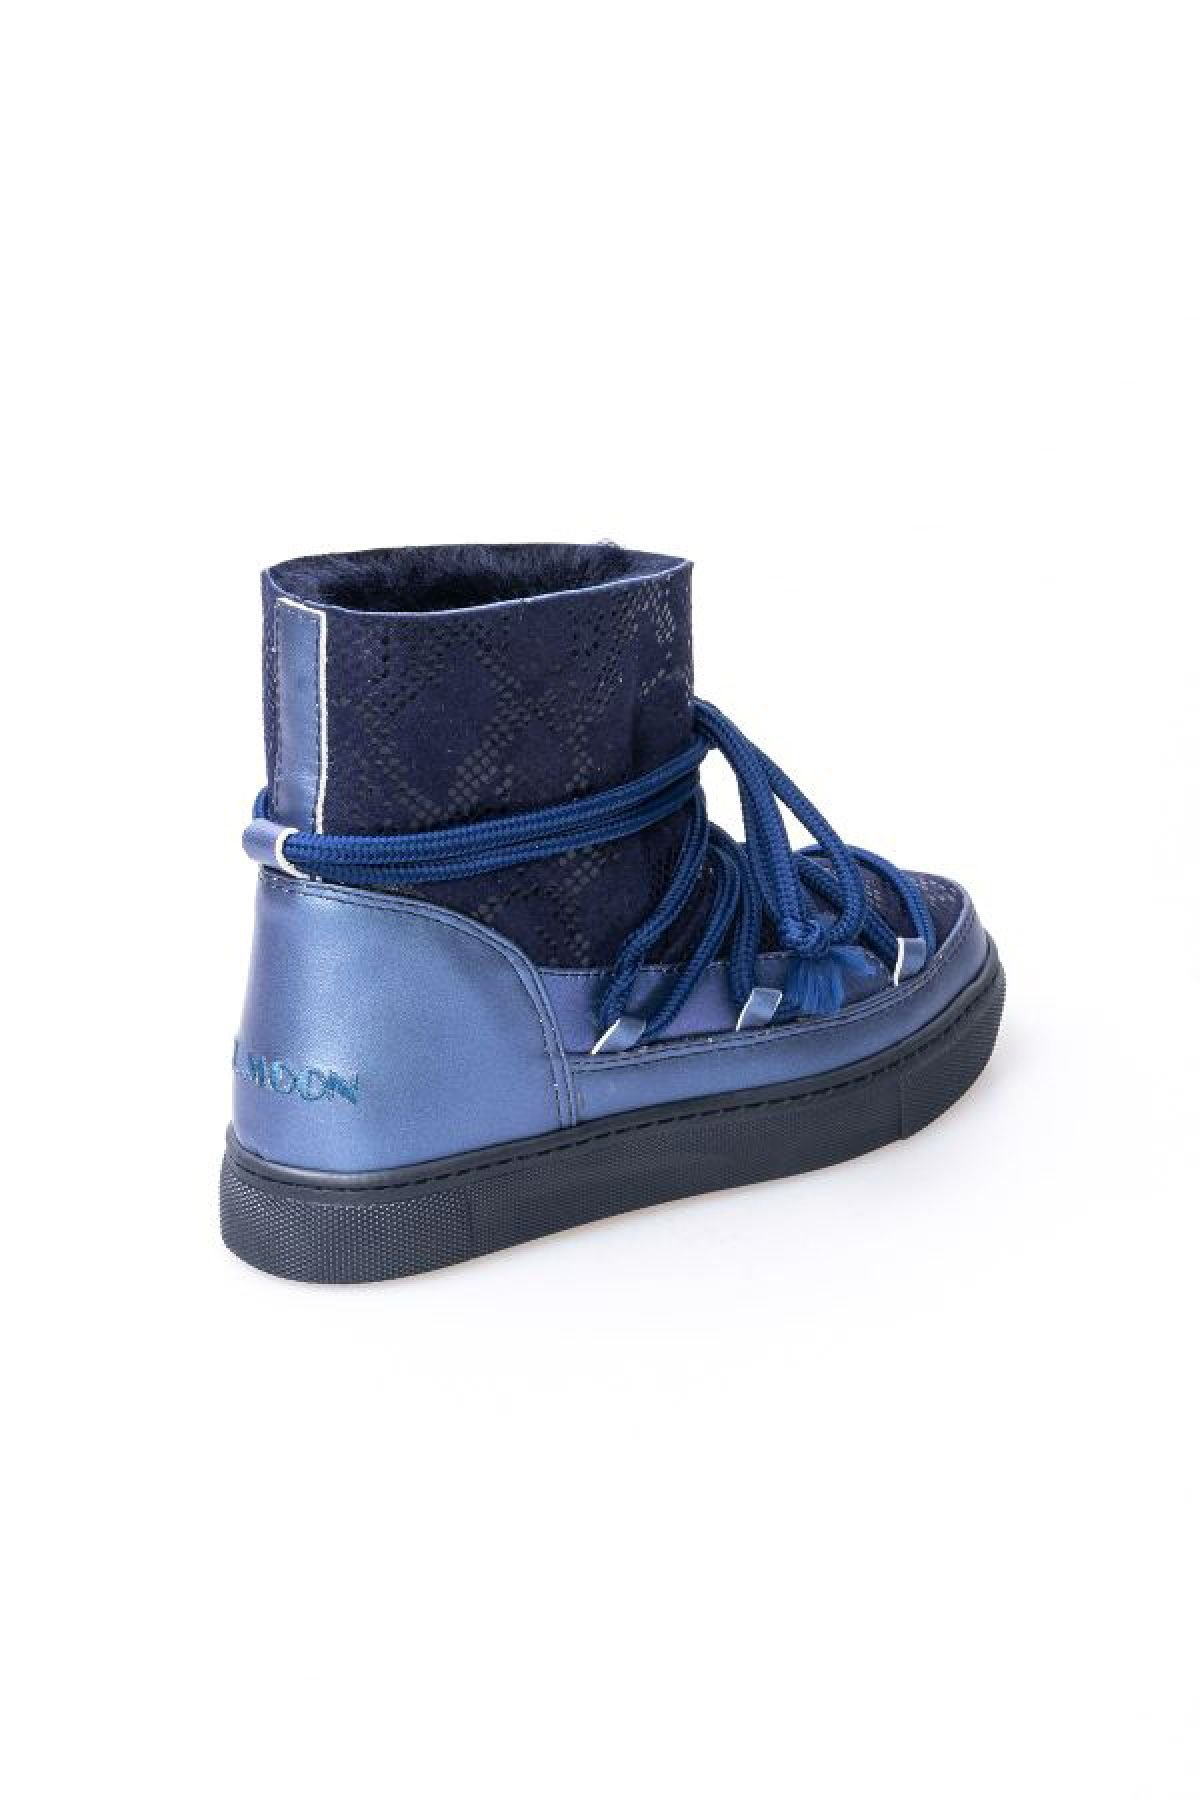 Cool Moon Genuine Shearling Women's Sneakers With Snake Pattern 355012 Navy blue